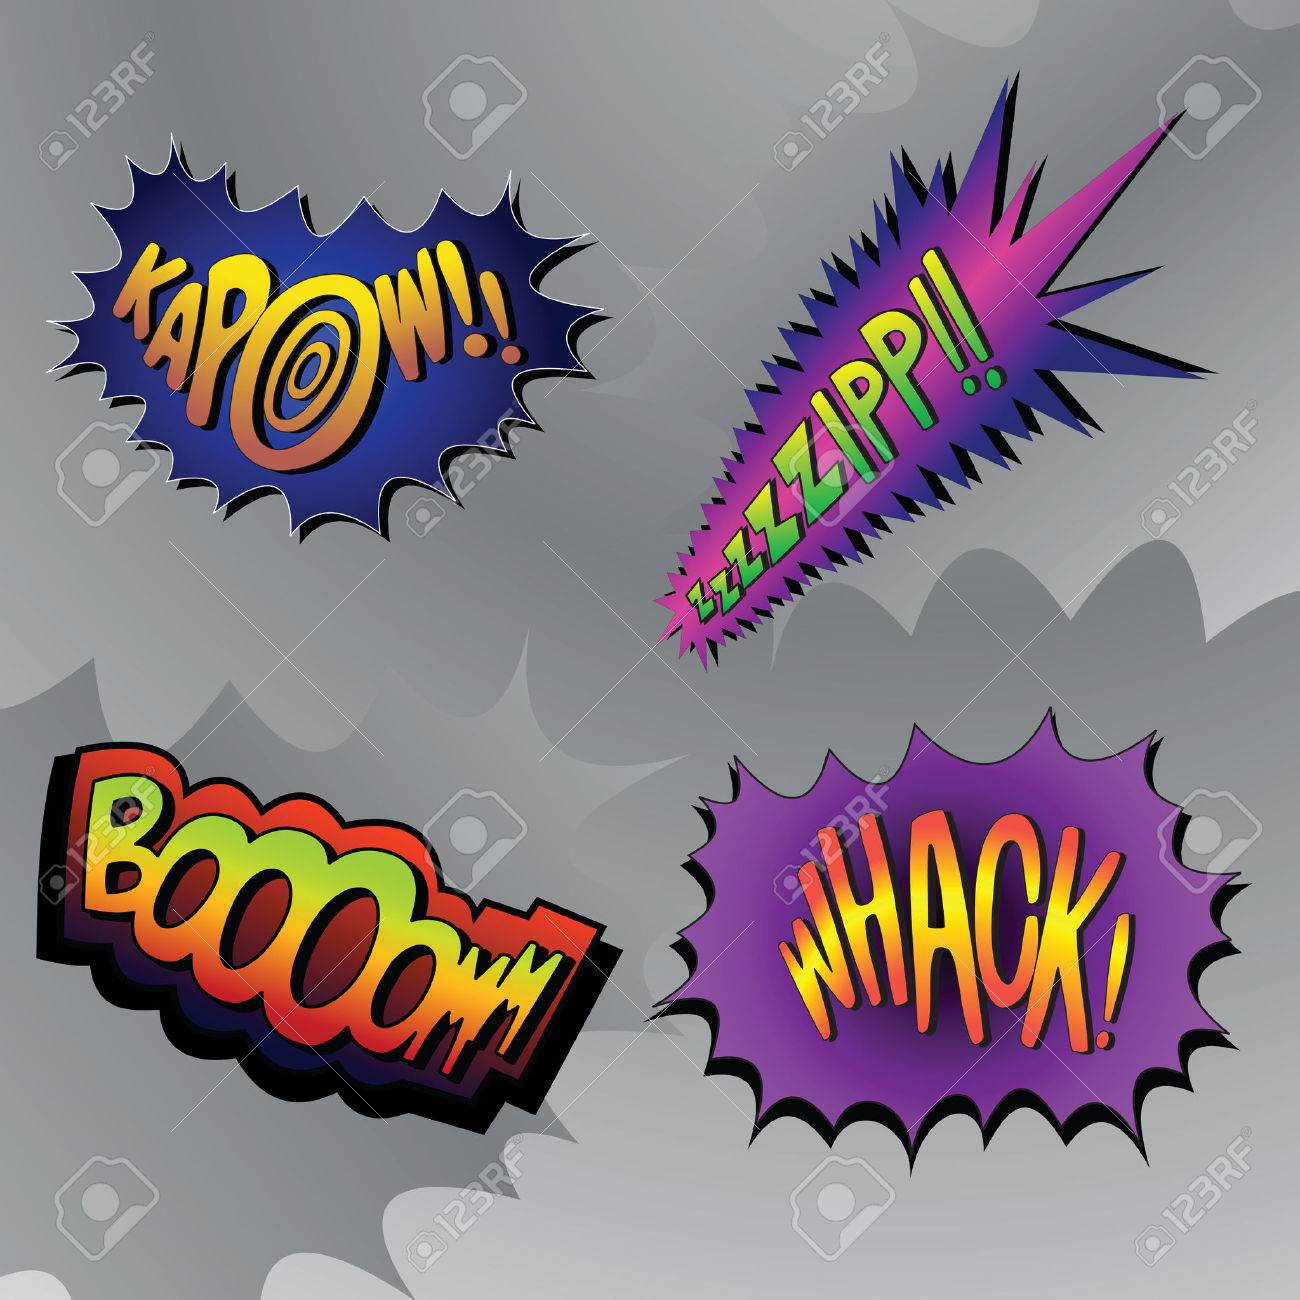 Superhero bashing #4 - comic fighting bubbles of super heroes Stock Vector - 1797664